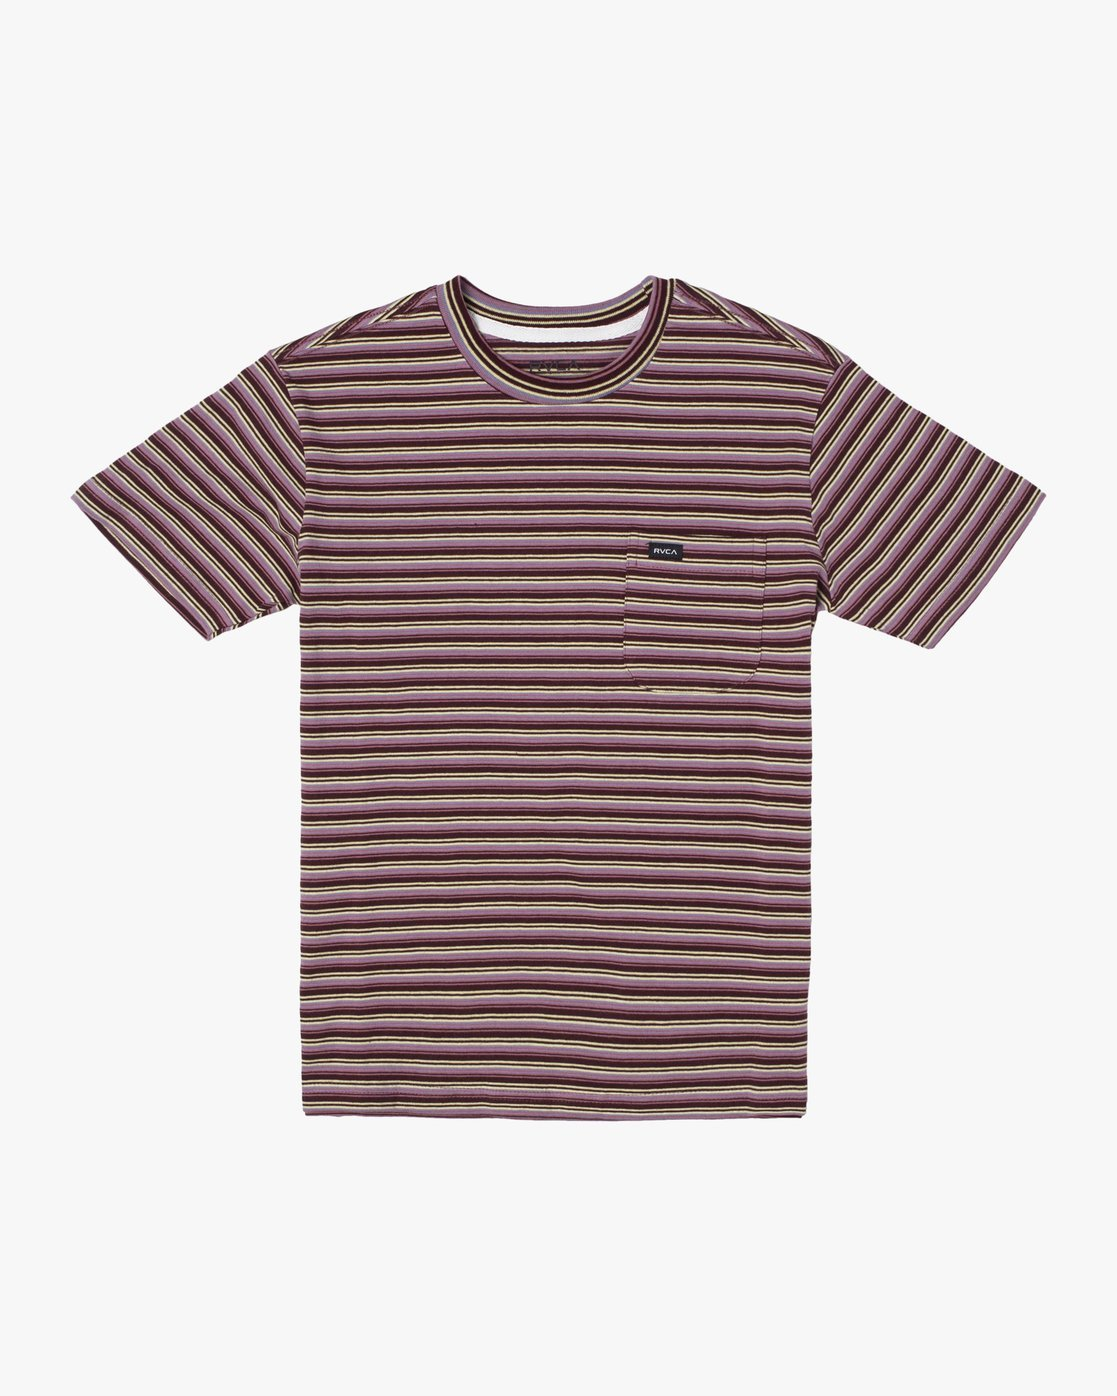 DOWNLINE STRIPE SHORT SLEEVE T-SHIRT